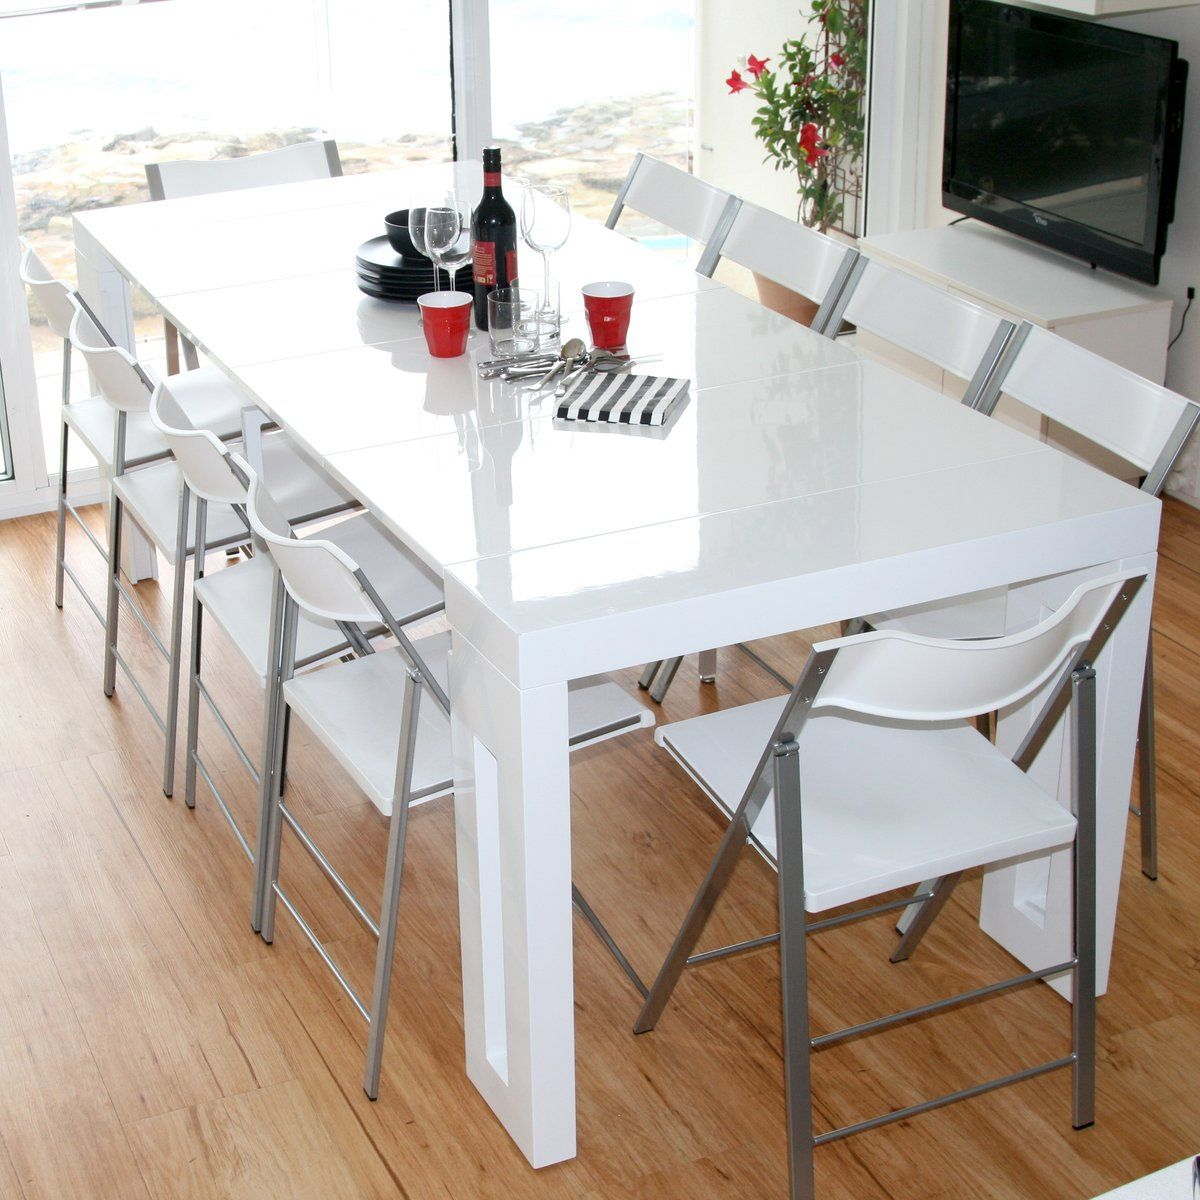 20 SpaceSaving Dining Tables for Your Apartment Space